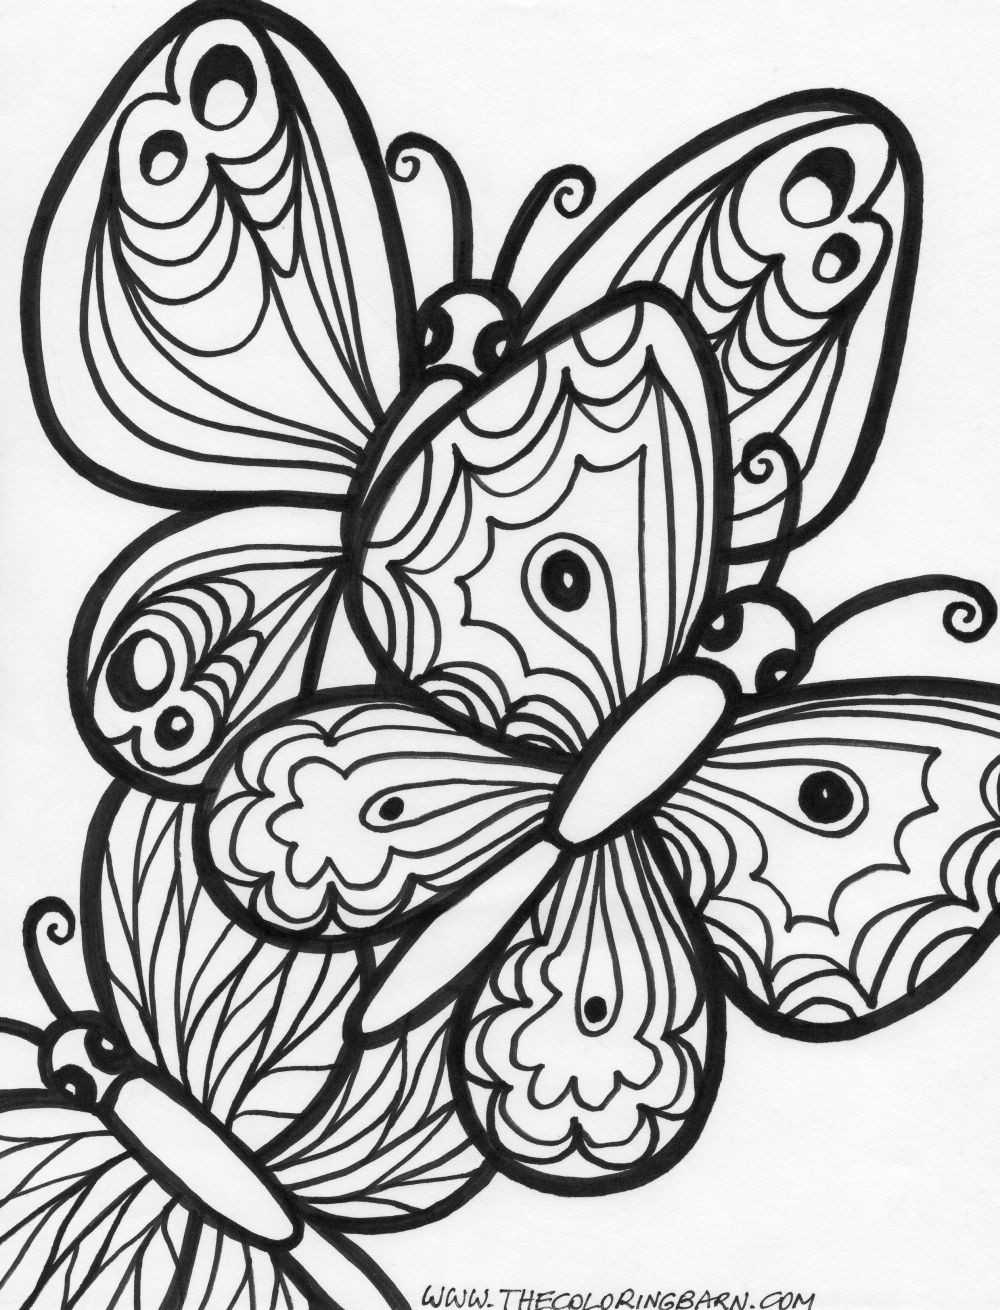 Best ideas about Free Printable Coloring Pages For Adults Only Pdf . Save or Pin coloring pages for adults Now.